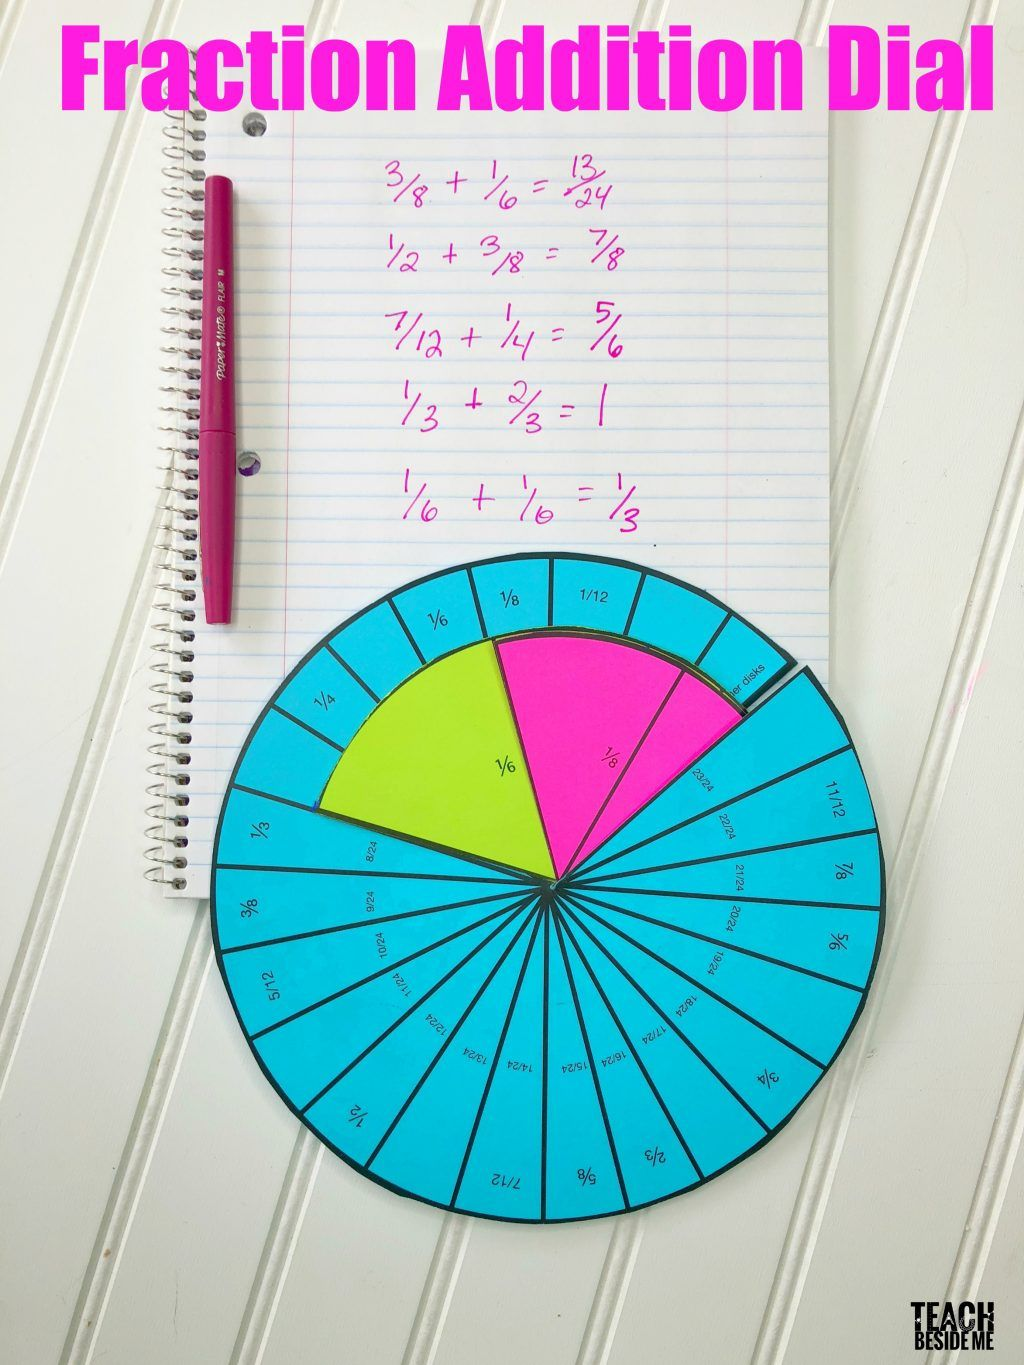 Adding Fractions Fraction Addition Dial